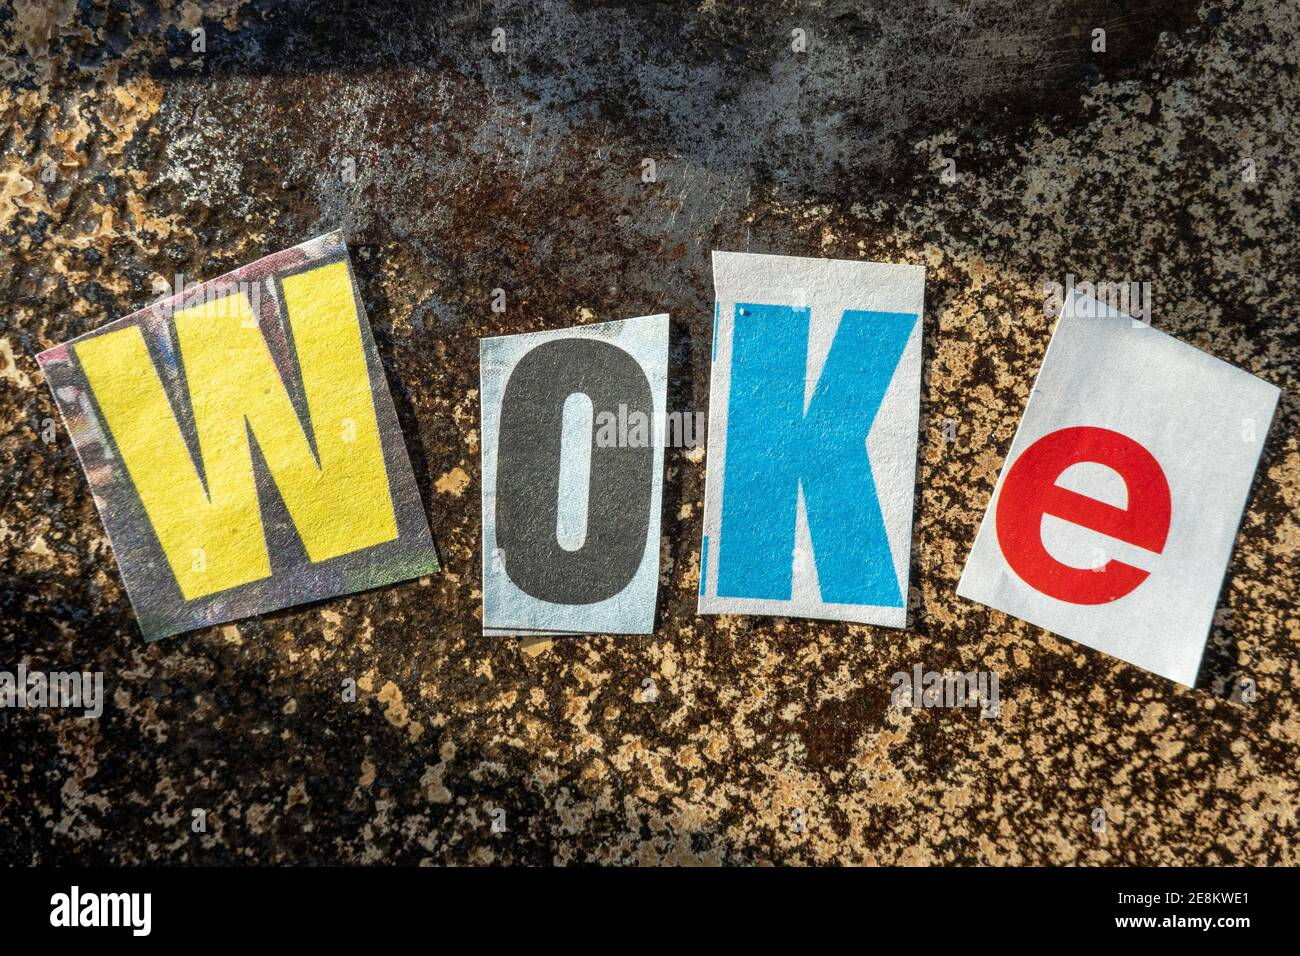 """TheTerm """"Stay WOKE"""" using cut-out paper letters in the ransom note effect typography Stock Photo"""